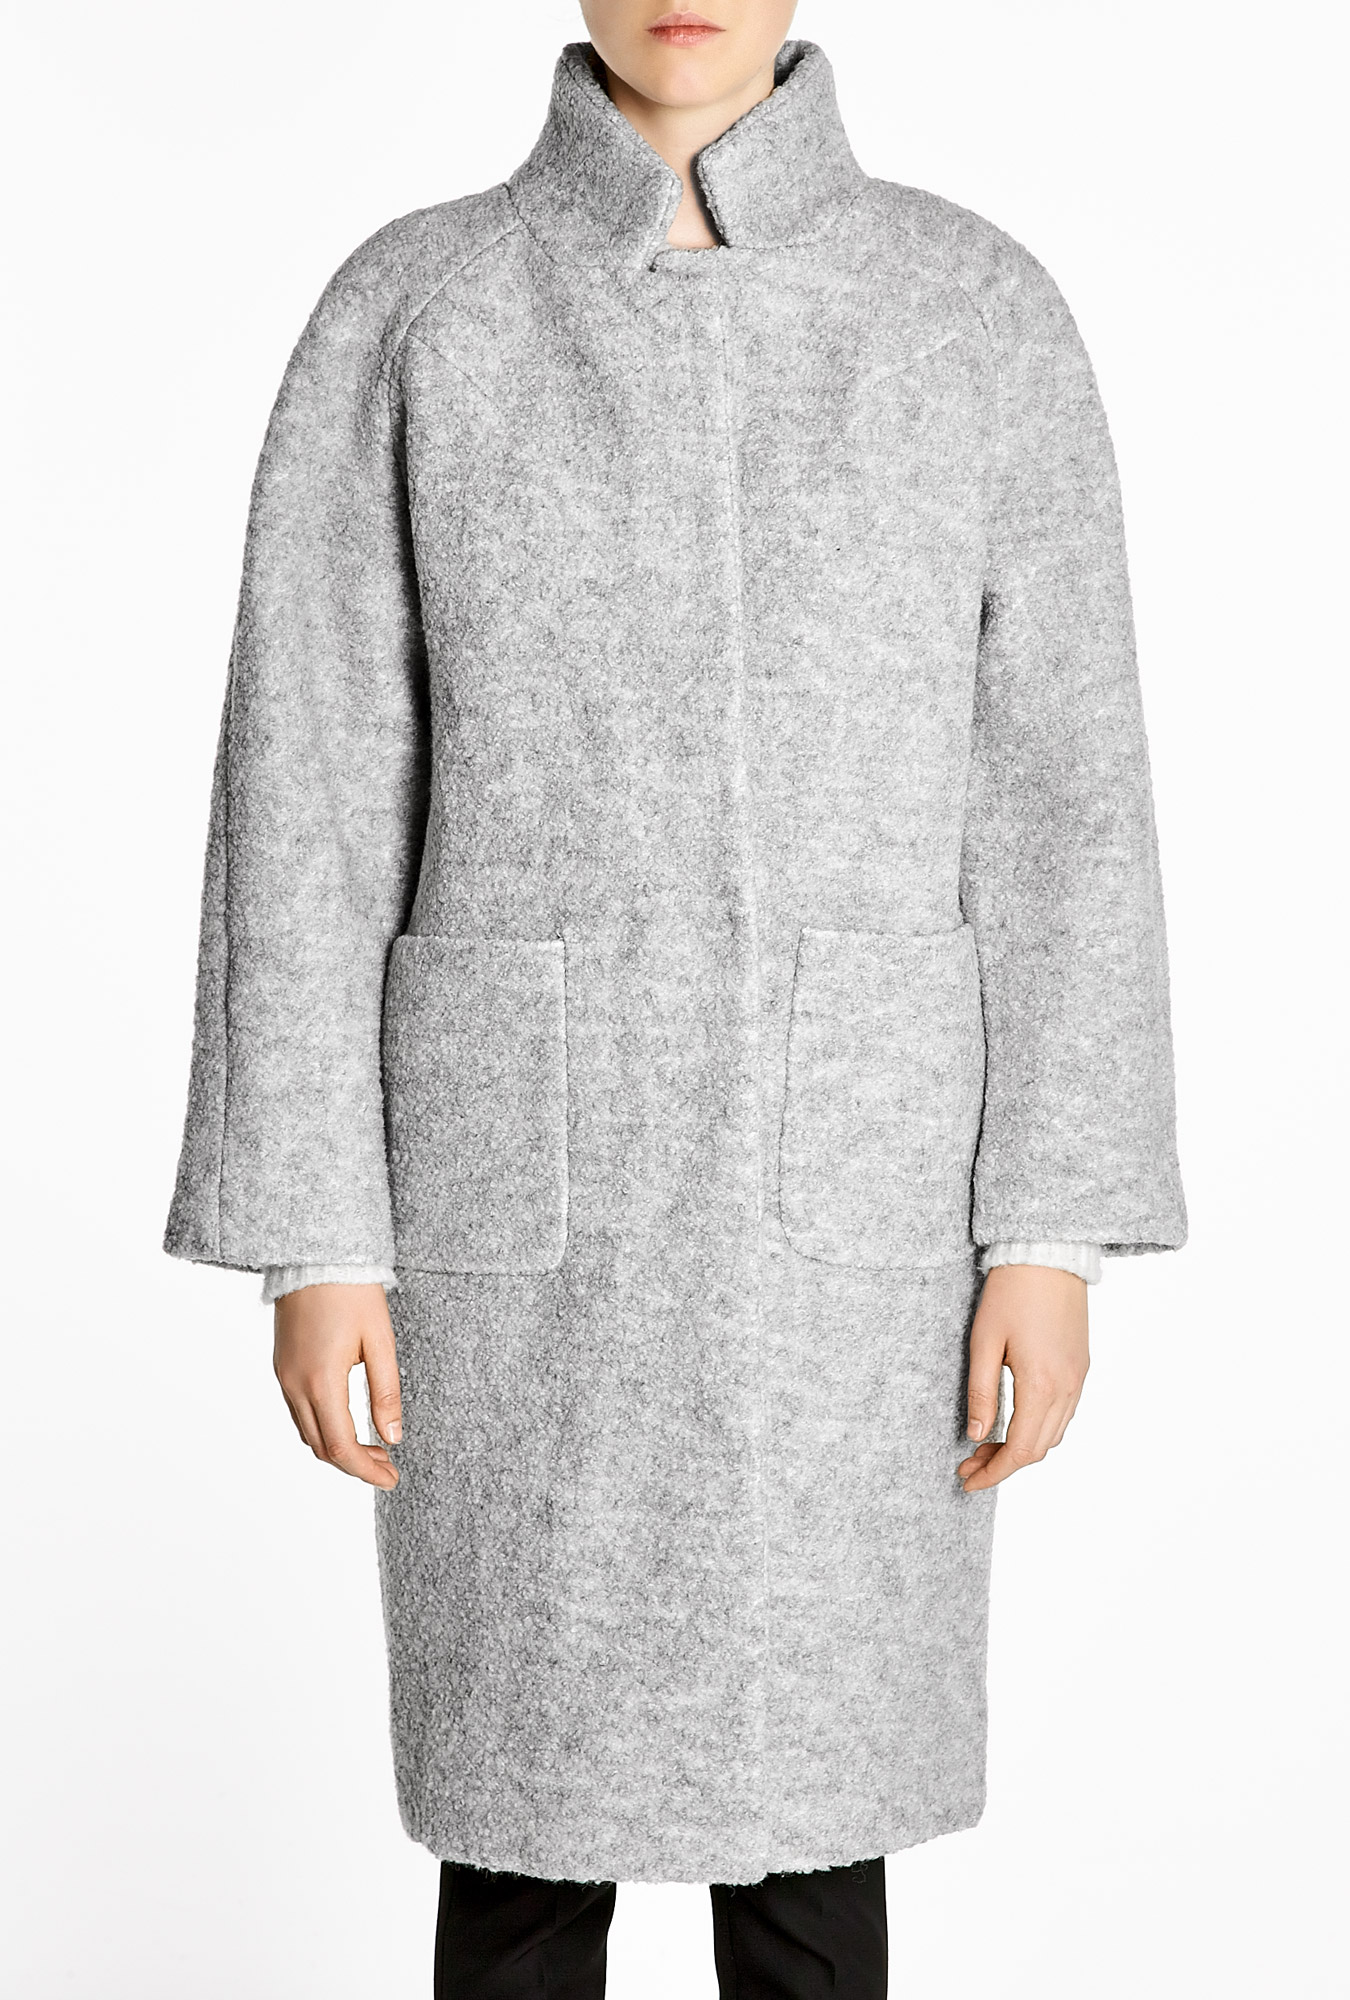 Ganni | Grey Melange Poodle Teddy Long Coat by Ganni